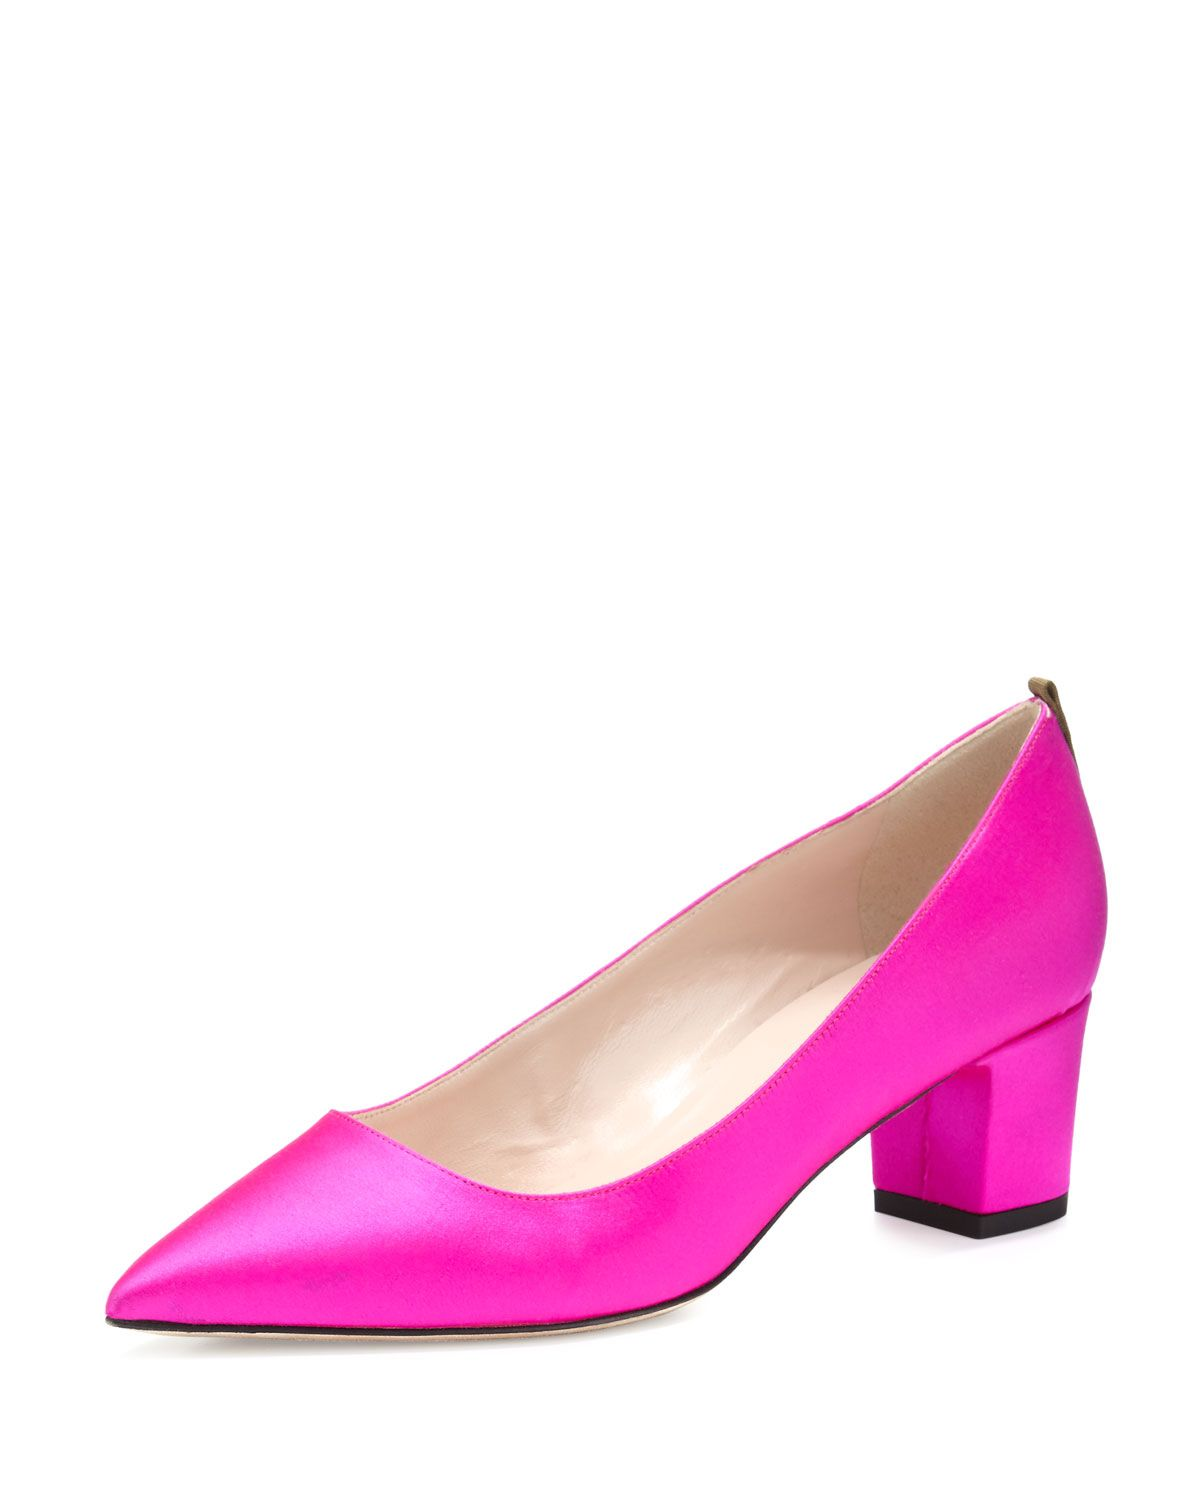 Katrina Satin Pointed-Toe Pump, Fuchsia